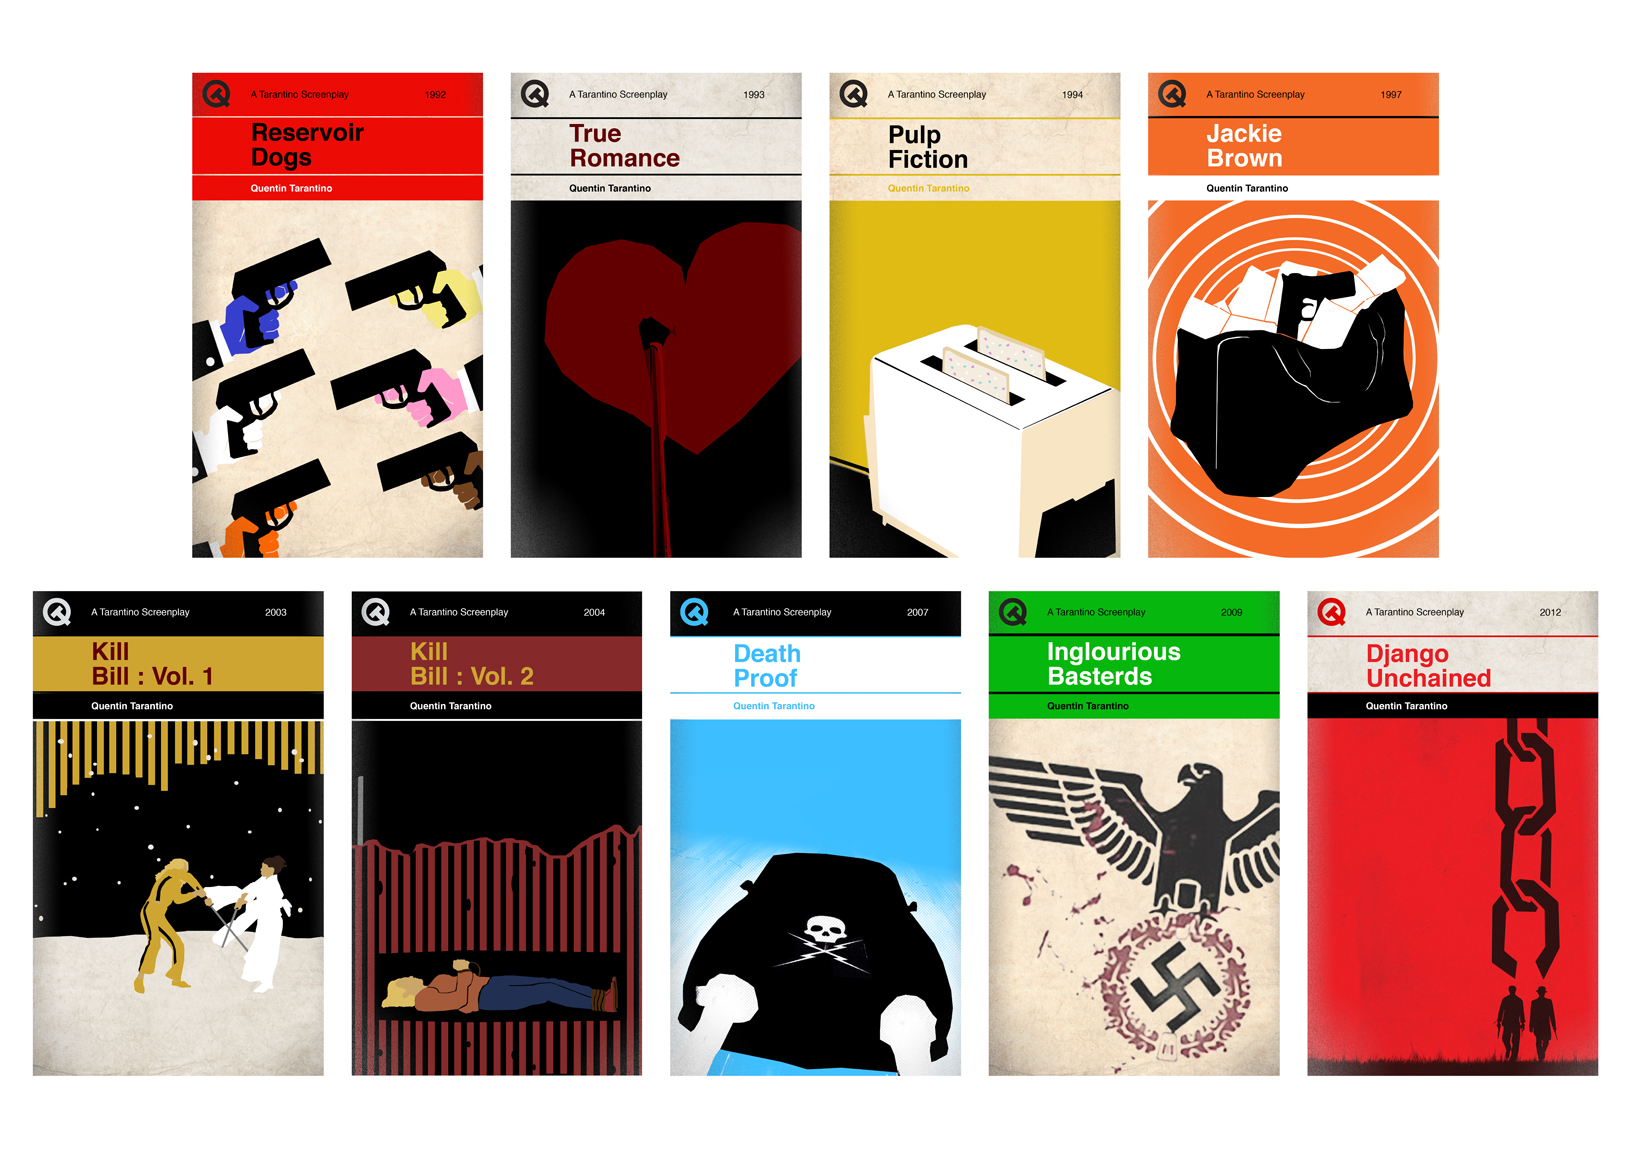 Classic Penguin Books Cover Design : Quentin tarantino films re imagined as 'penguin style